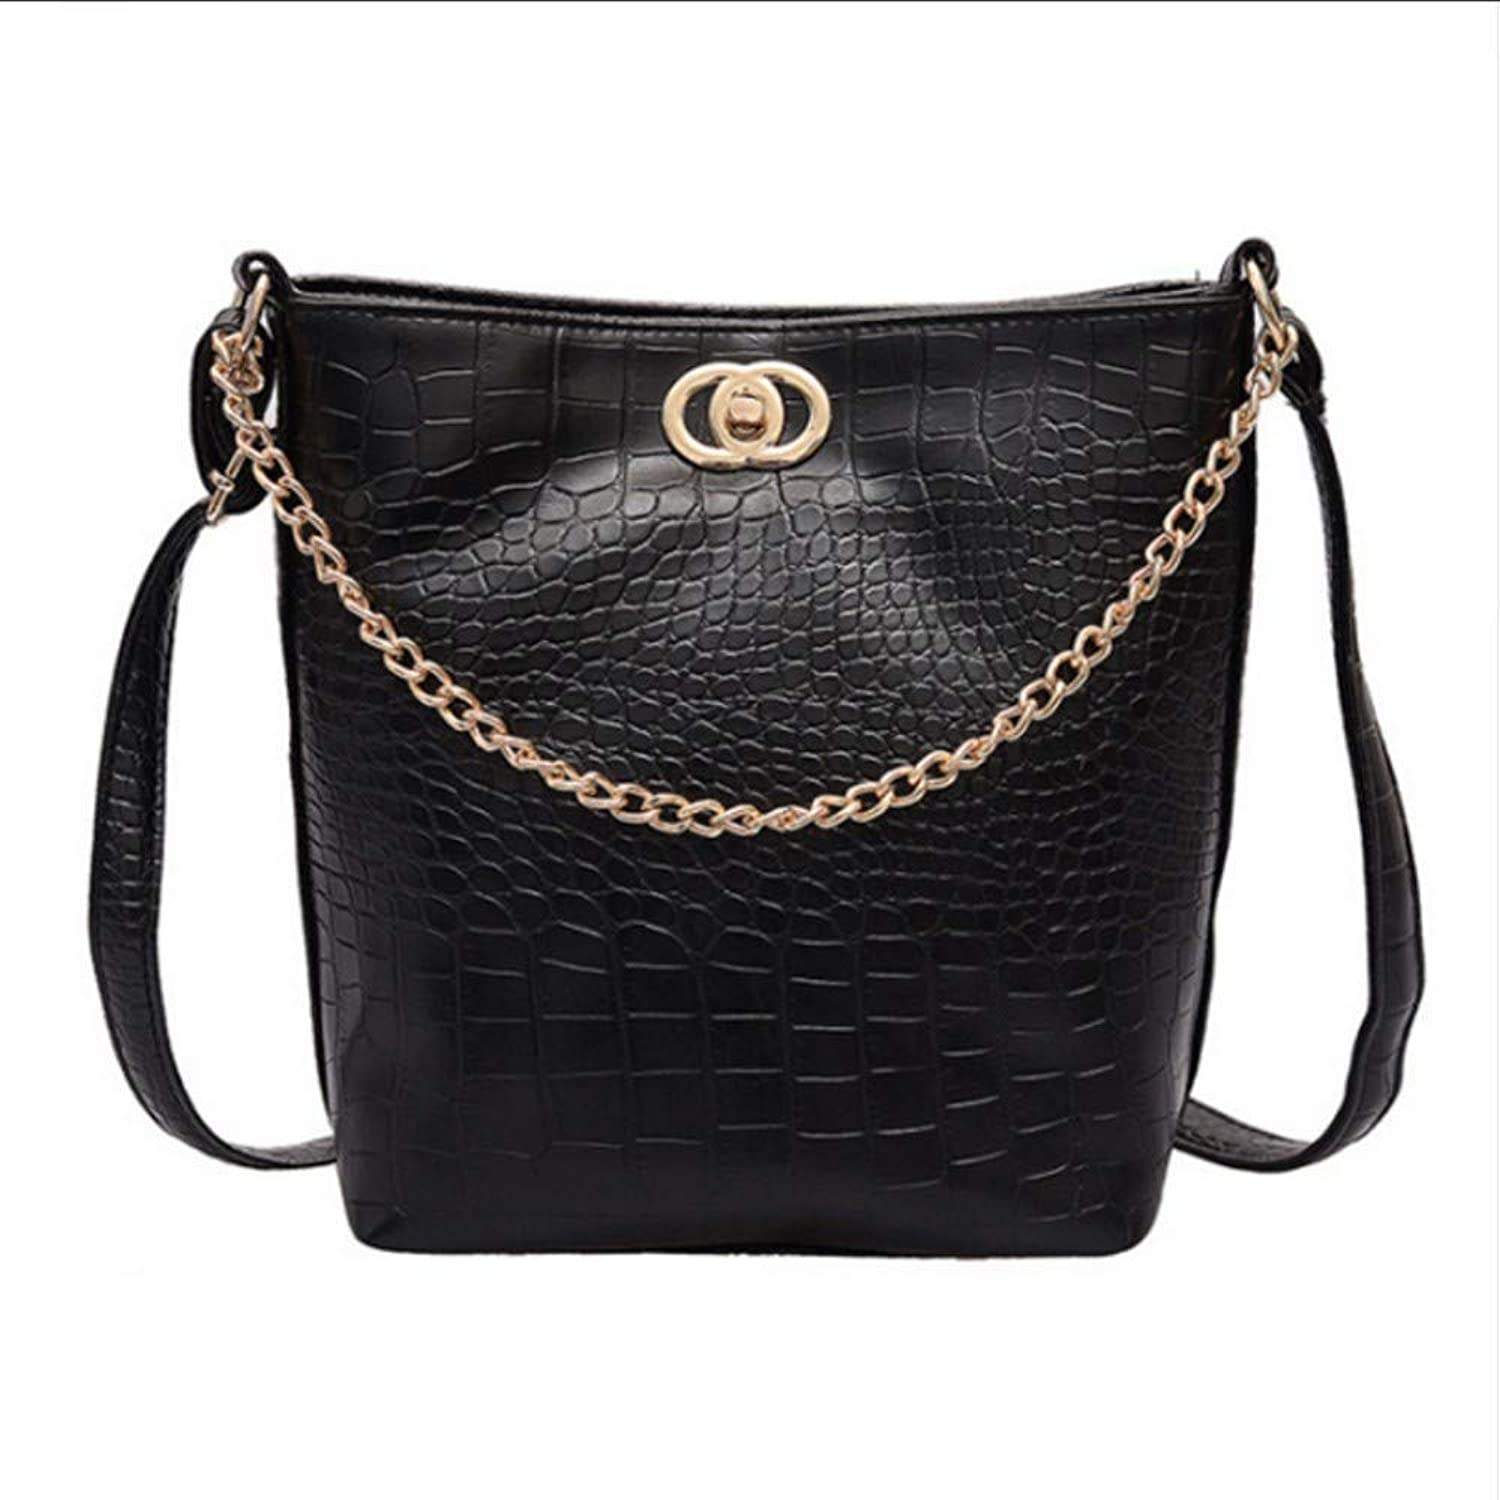 JQSM Alligator Pu Leather Casual Totes High-Capacity Bucket Bags for Women Metal Chain Stripe Shoulder Bags All-Match